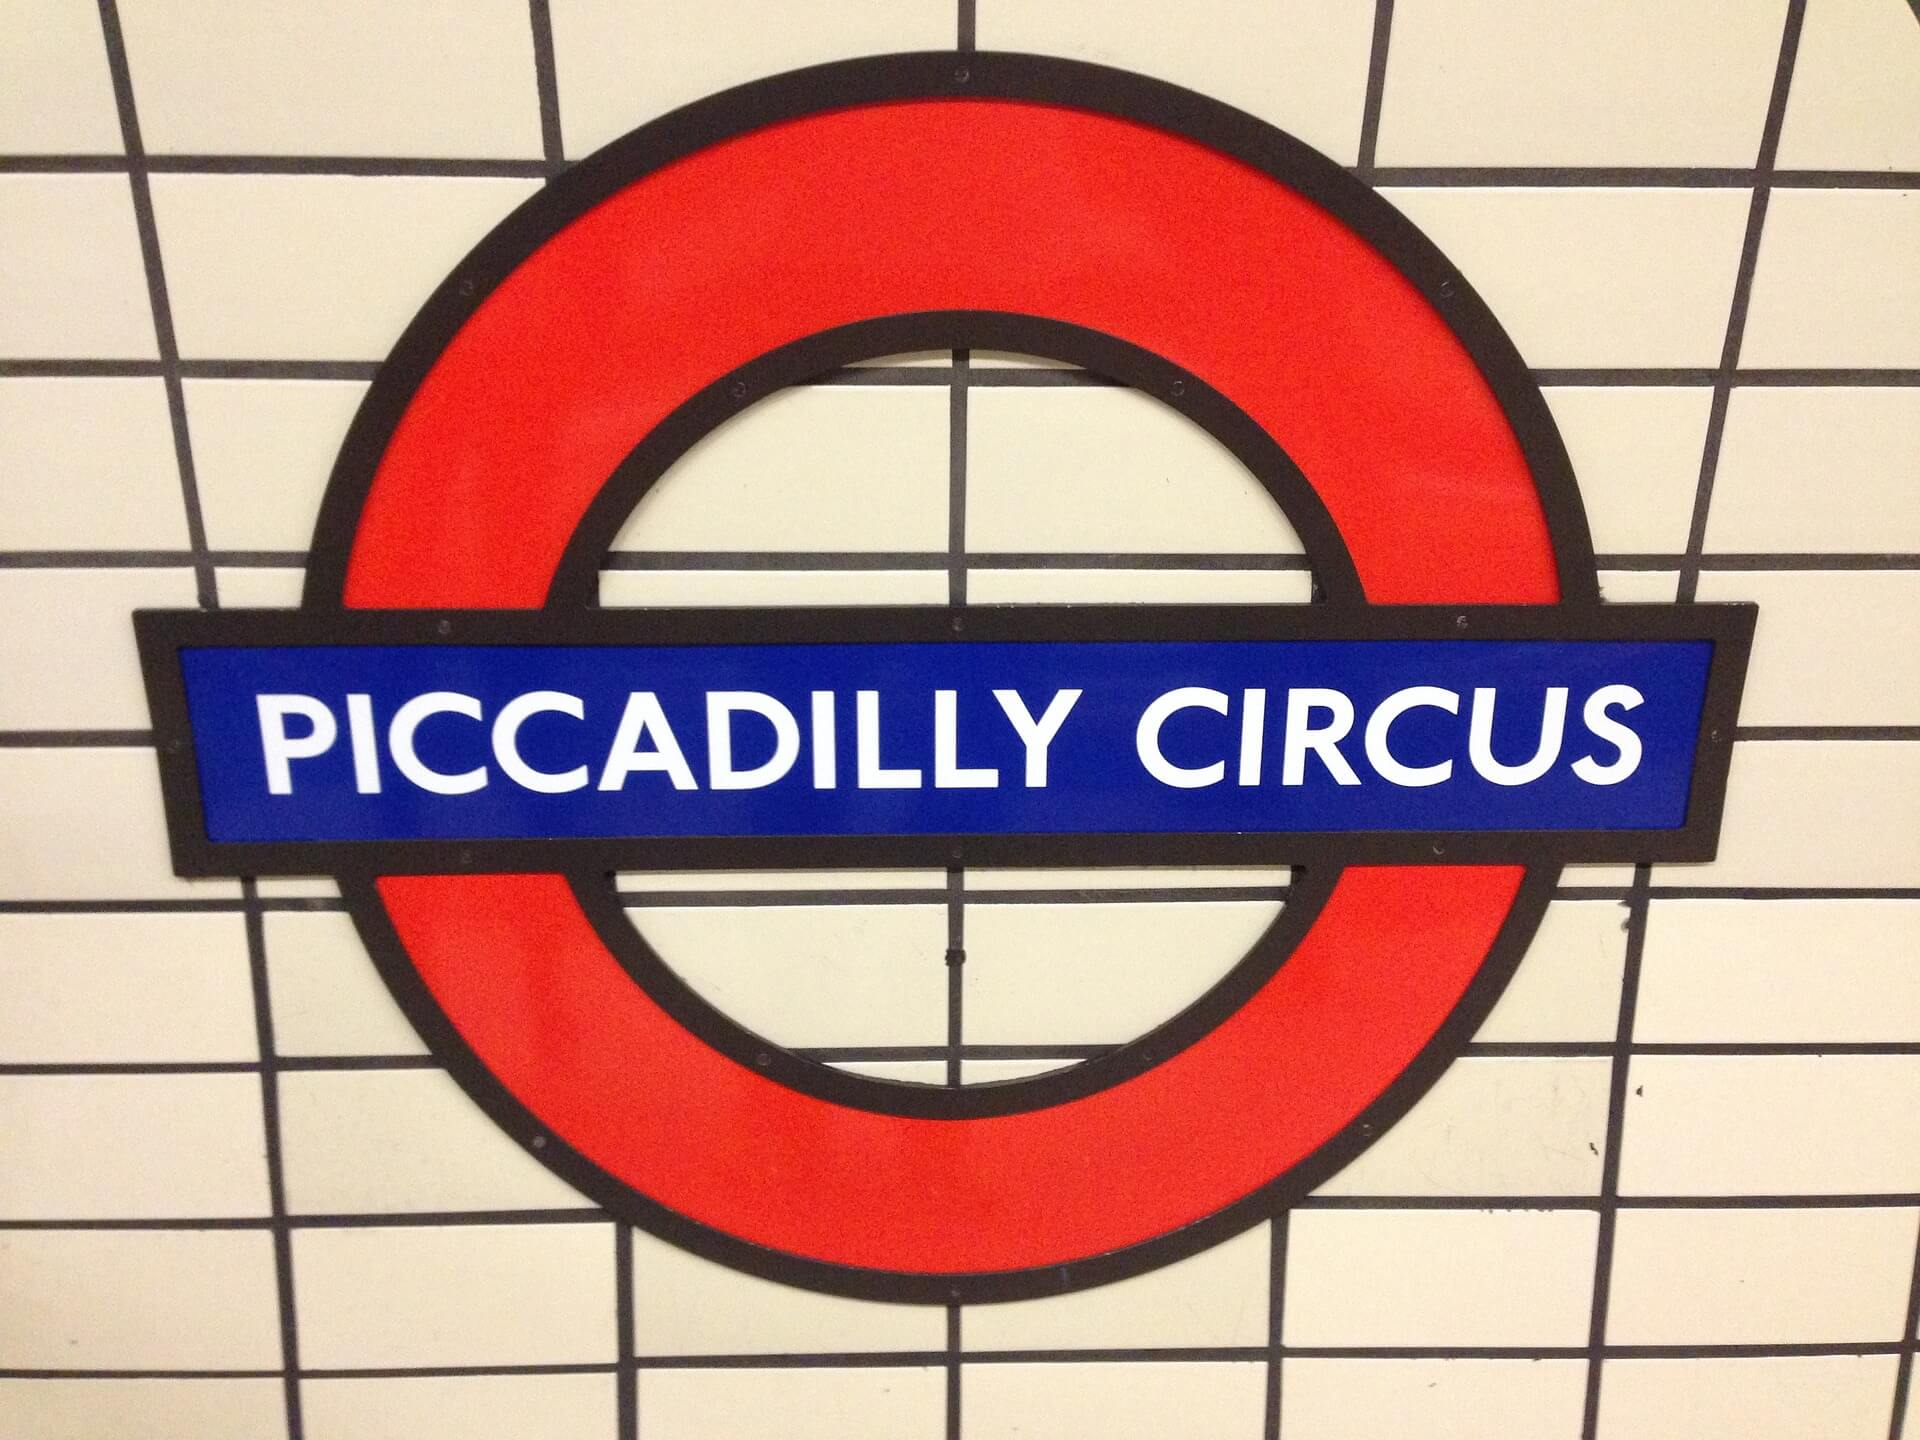 London Piccadilly Circus Tube Sign